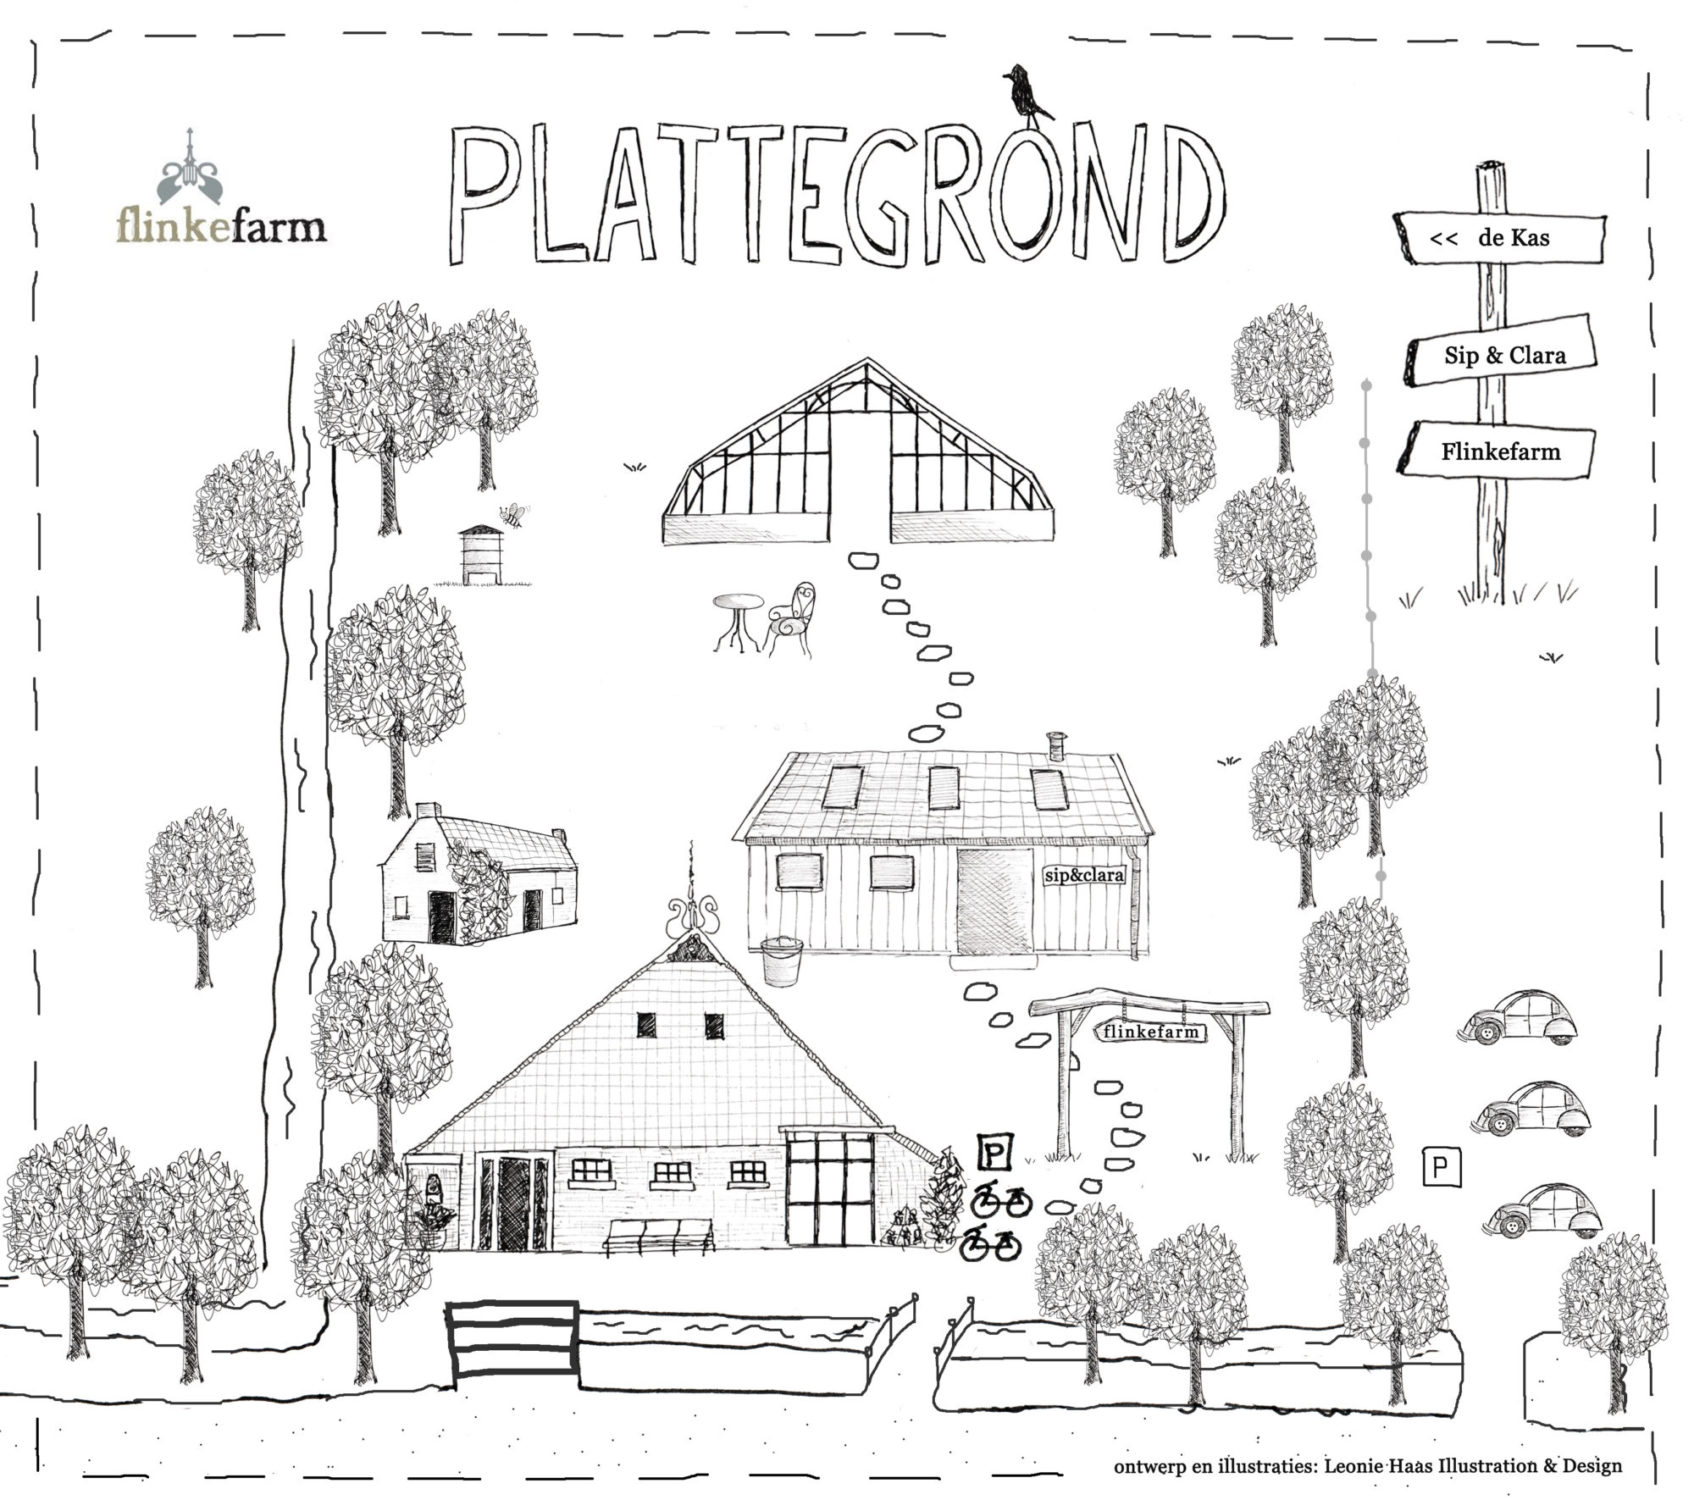 plattegrond, illustraties map, illustratie, illustration, pentekening, Leonie Haas, Flinkefarm, It Flinkeboskje, Friesland, huwelijk, ontwerp, tekening, drawing, boerderij,